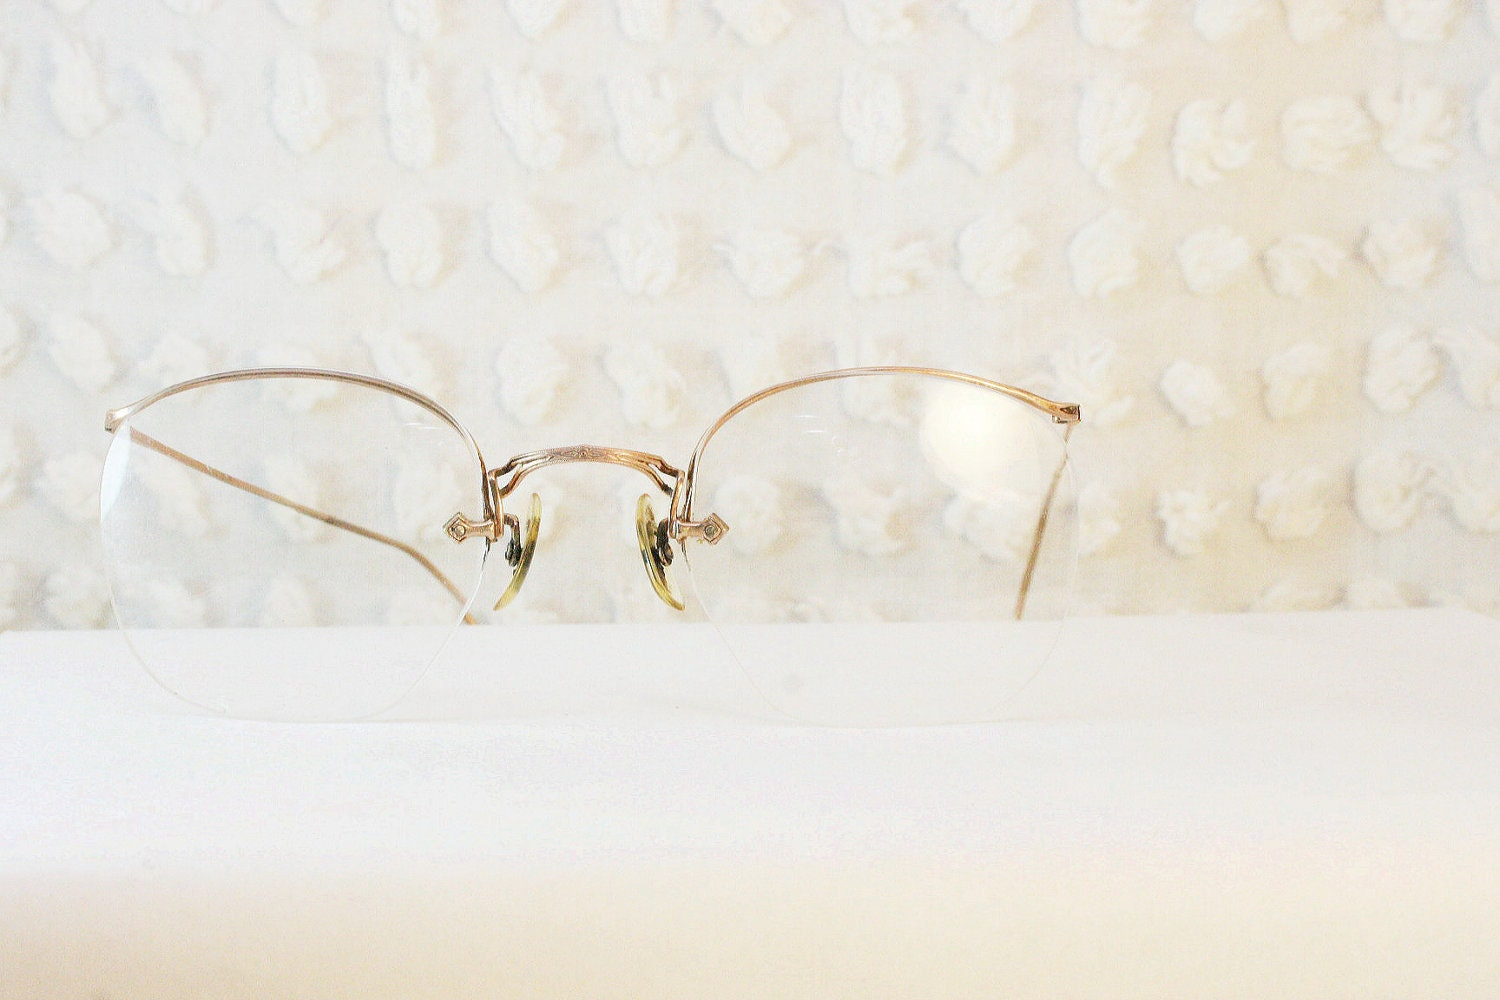 Numont 1940s Ful Vue Eyeglasses Yellow Gold Fill by ...